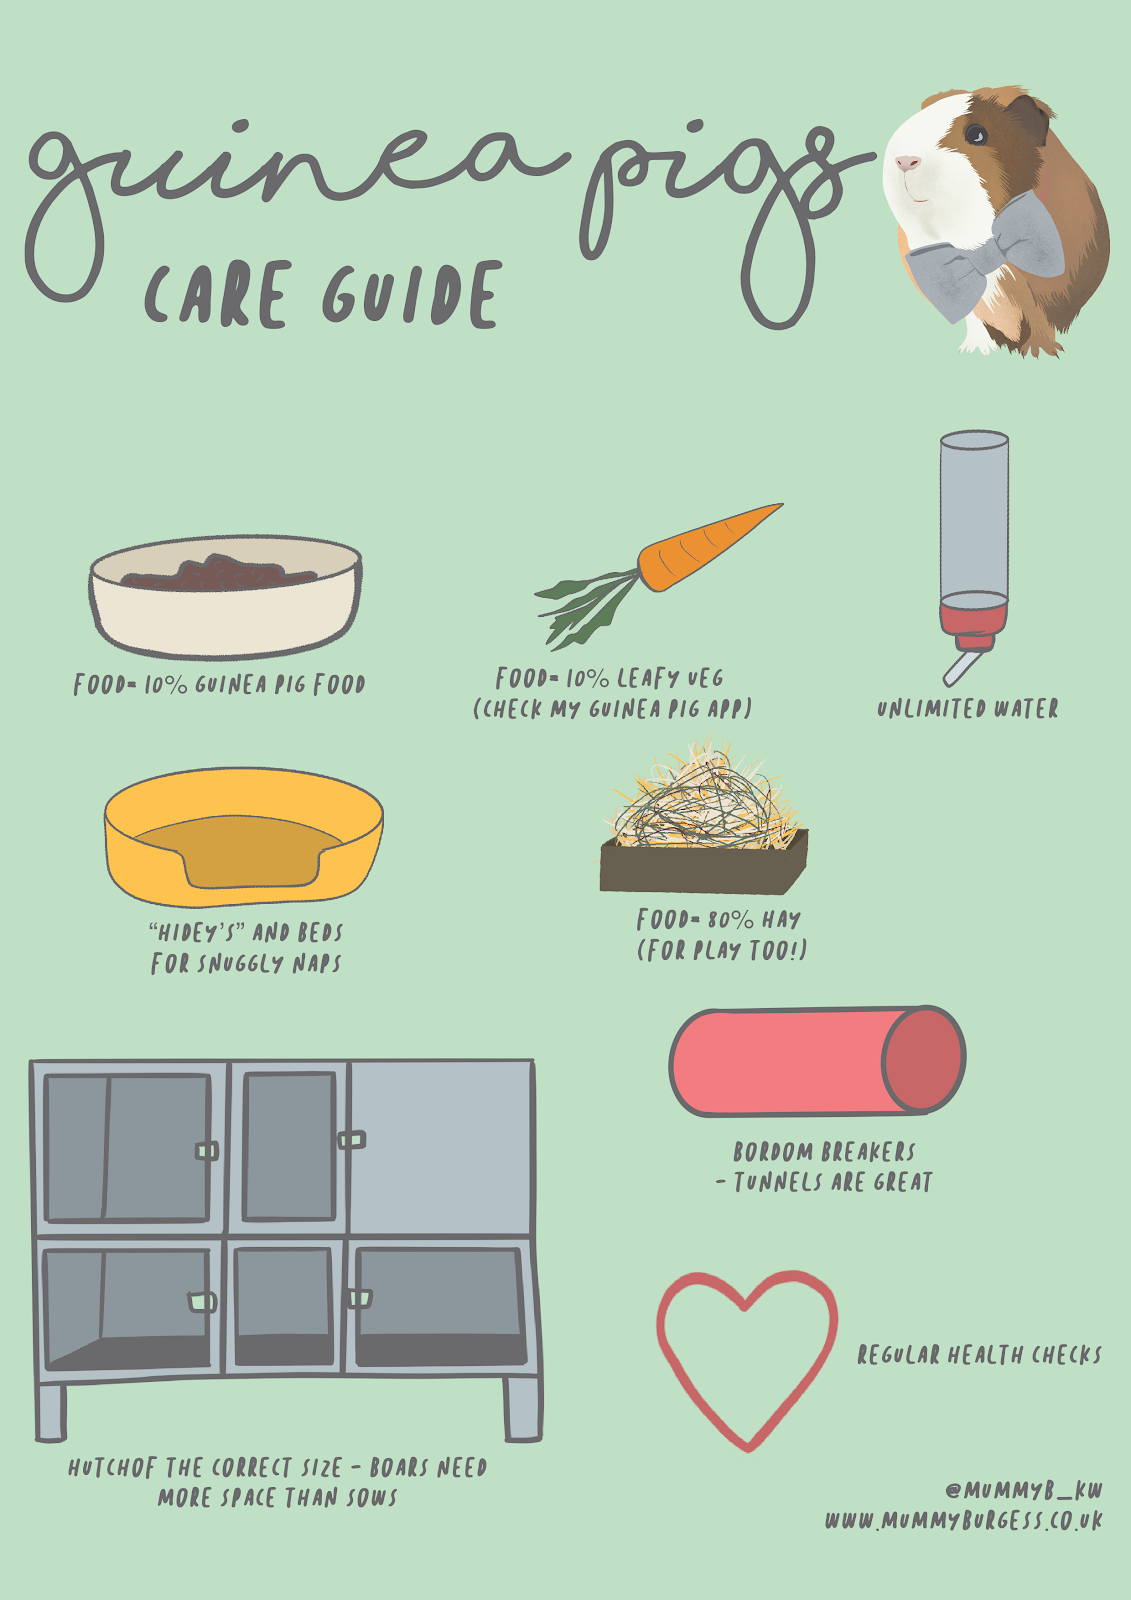 A Care Guide For Guinea Pigs